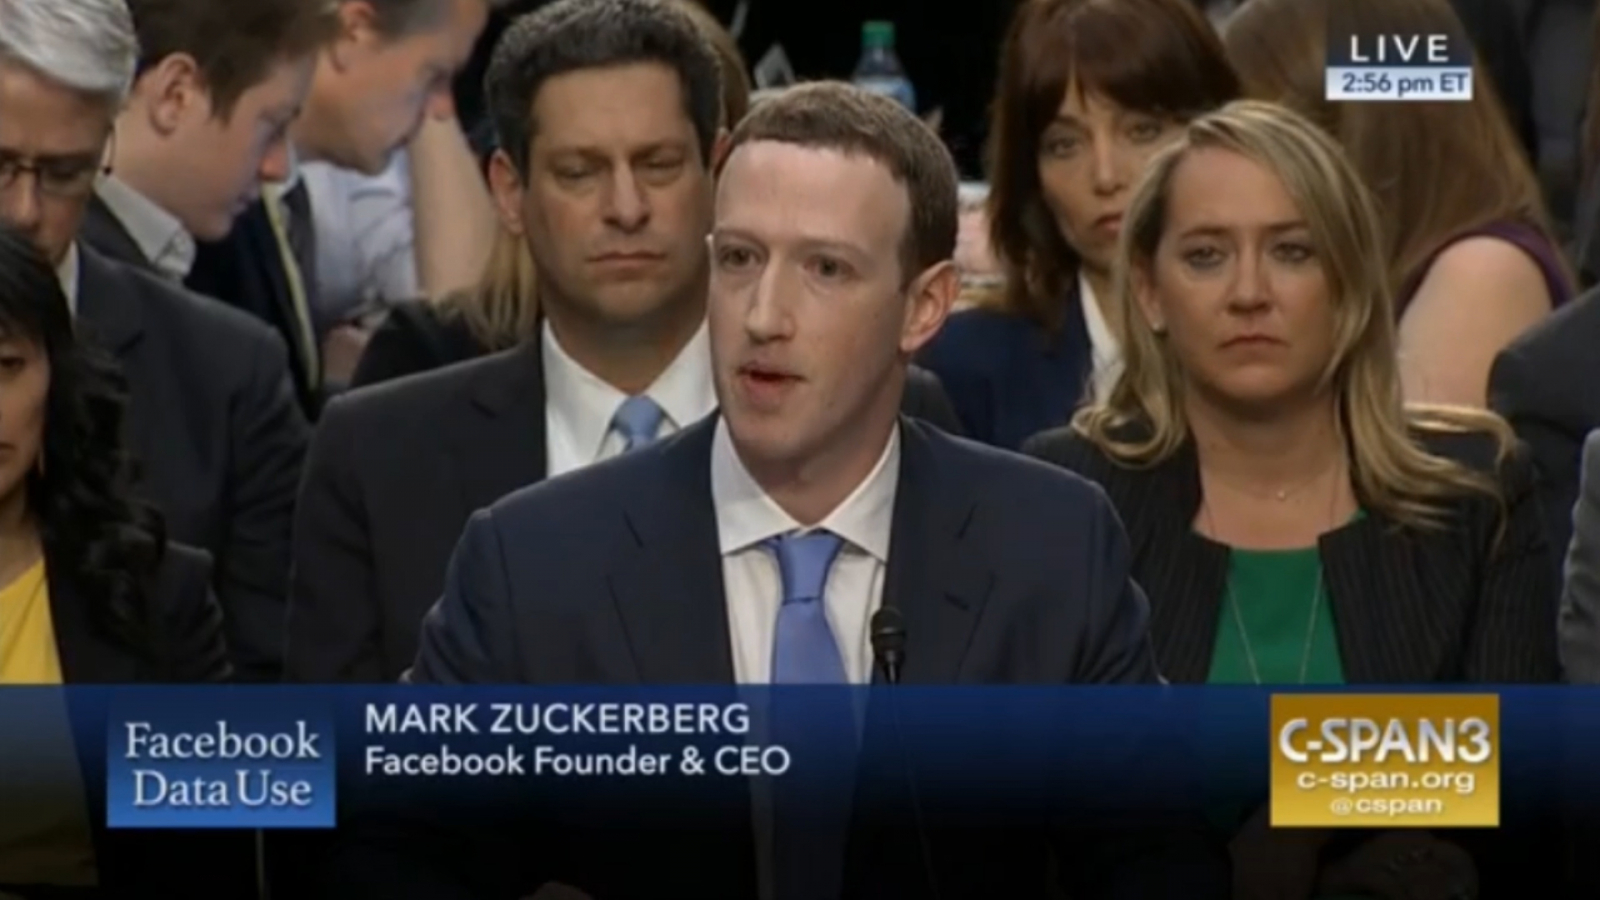 facebook-ceo-mark-zuckerberg-tells-senate-how-company-is-improving-data-security-in-opening-statement